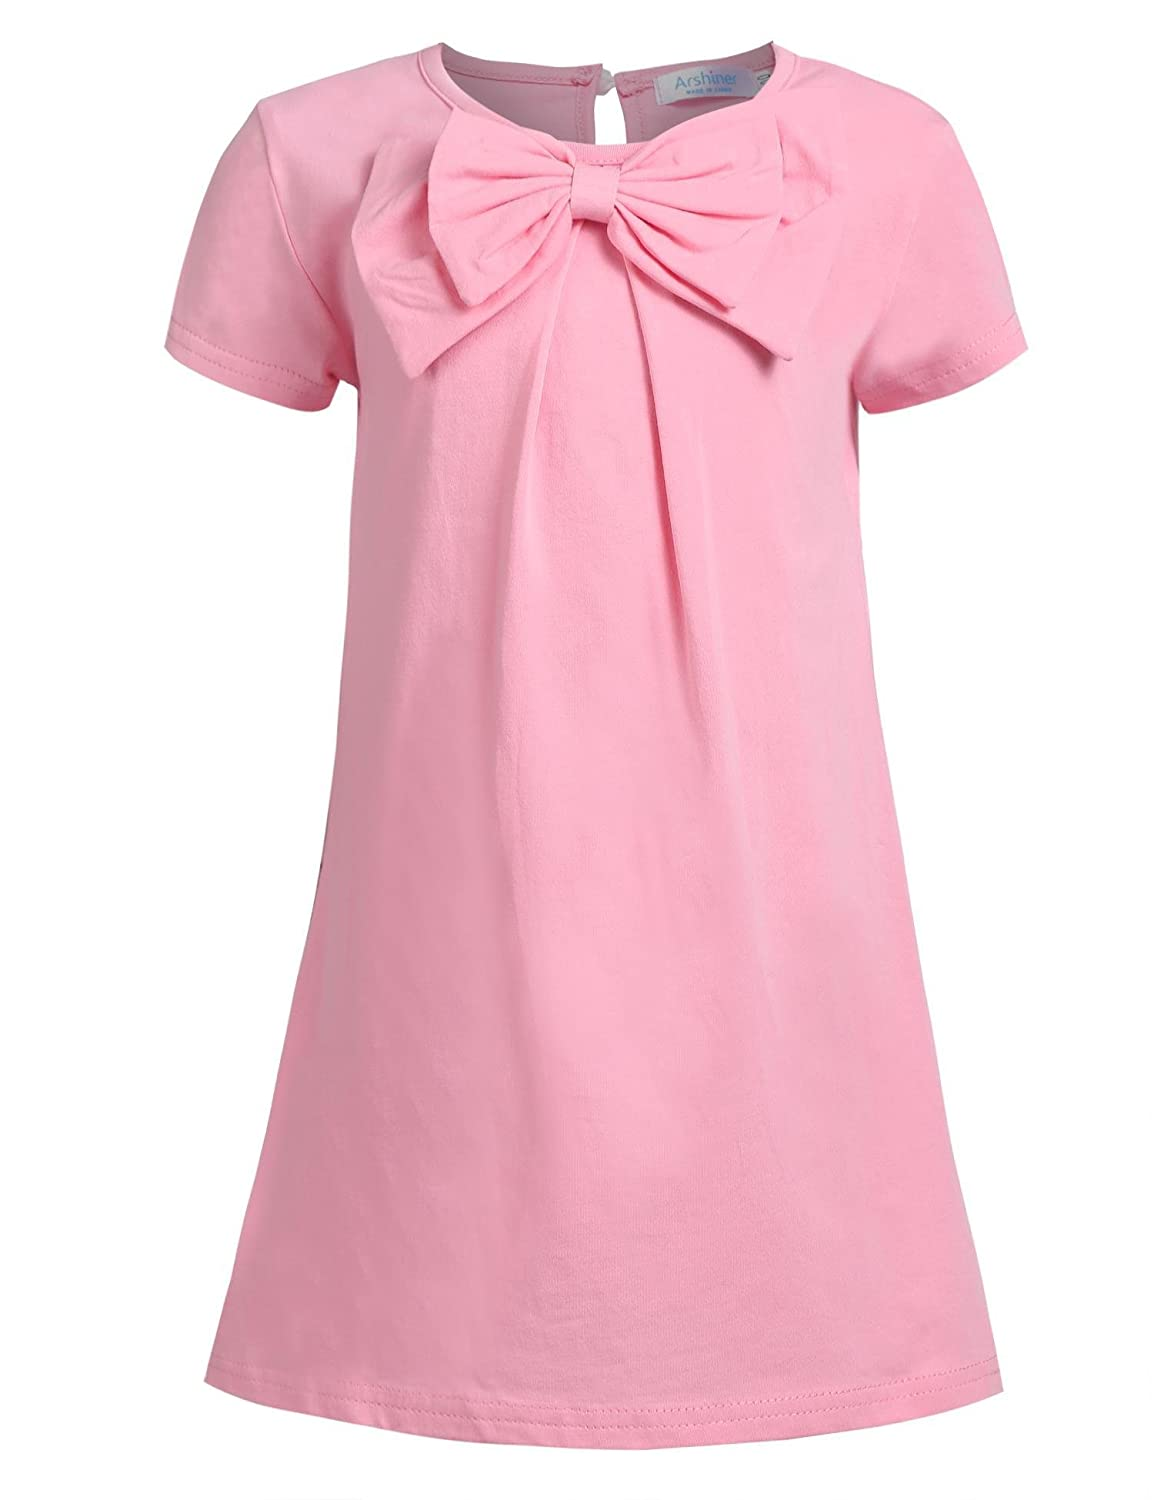 Arshiner Girls Long Sleeve Dress Solid Color Kids Causal Dress with Bow Tie AMS005304